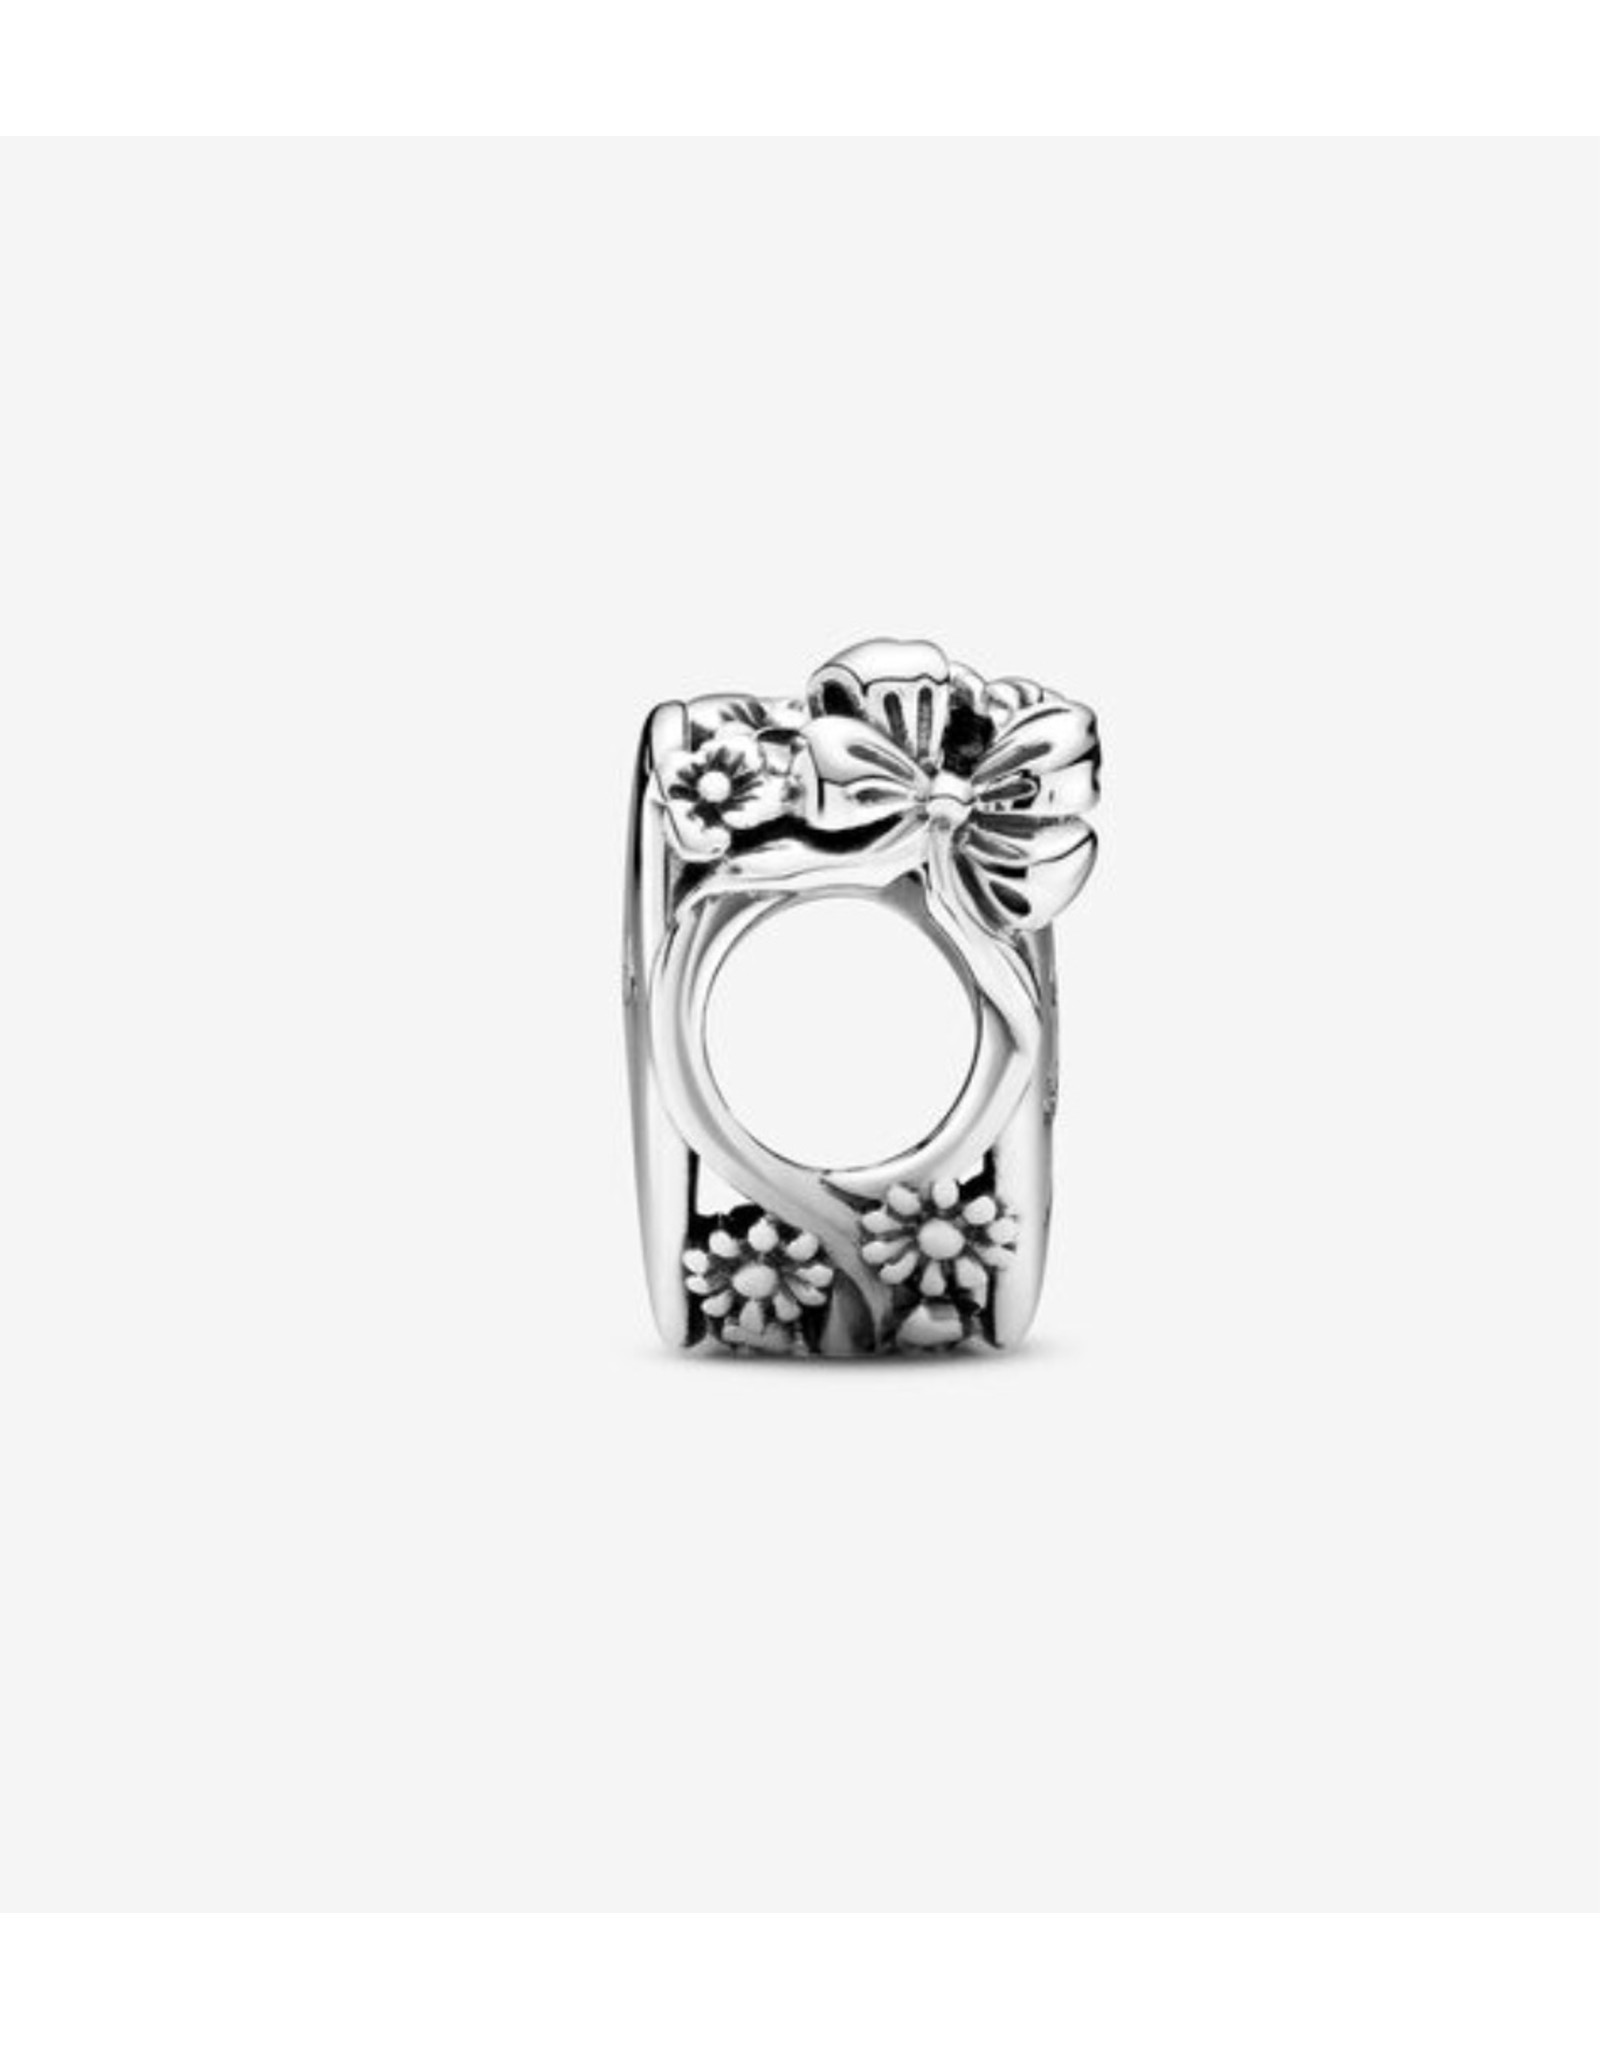 Pandora Pandora Charm,799146C00, I Couldn't Say I Do Without You, Heart